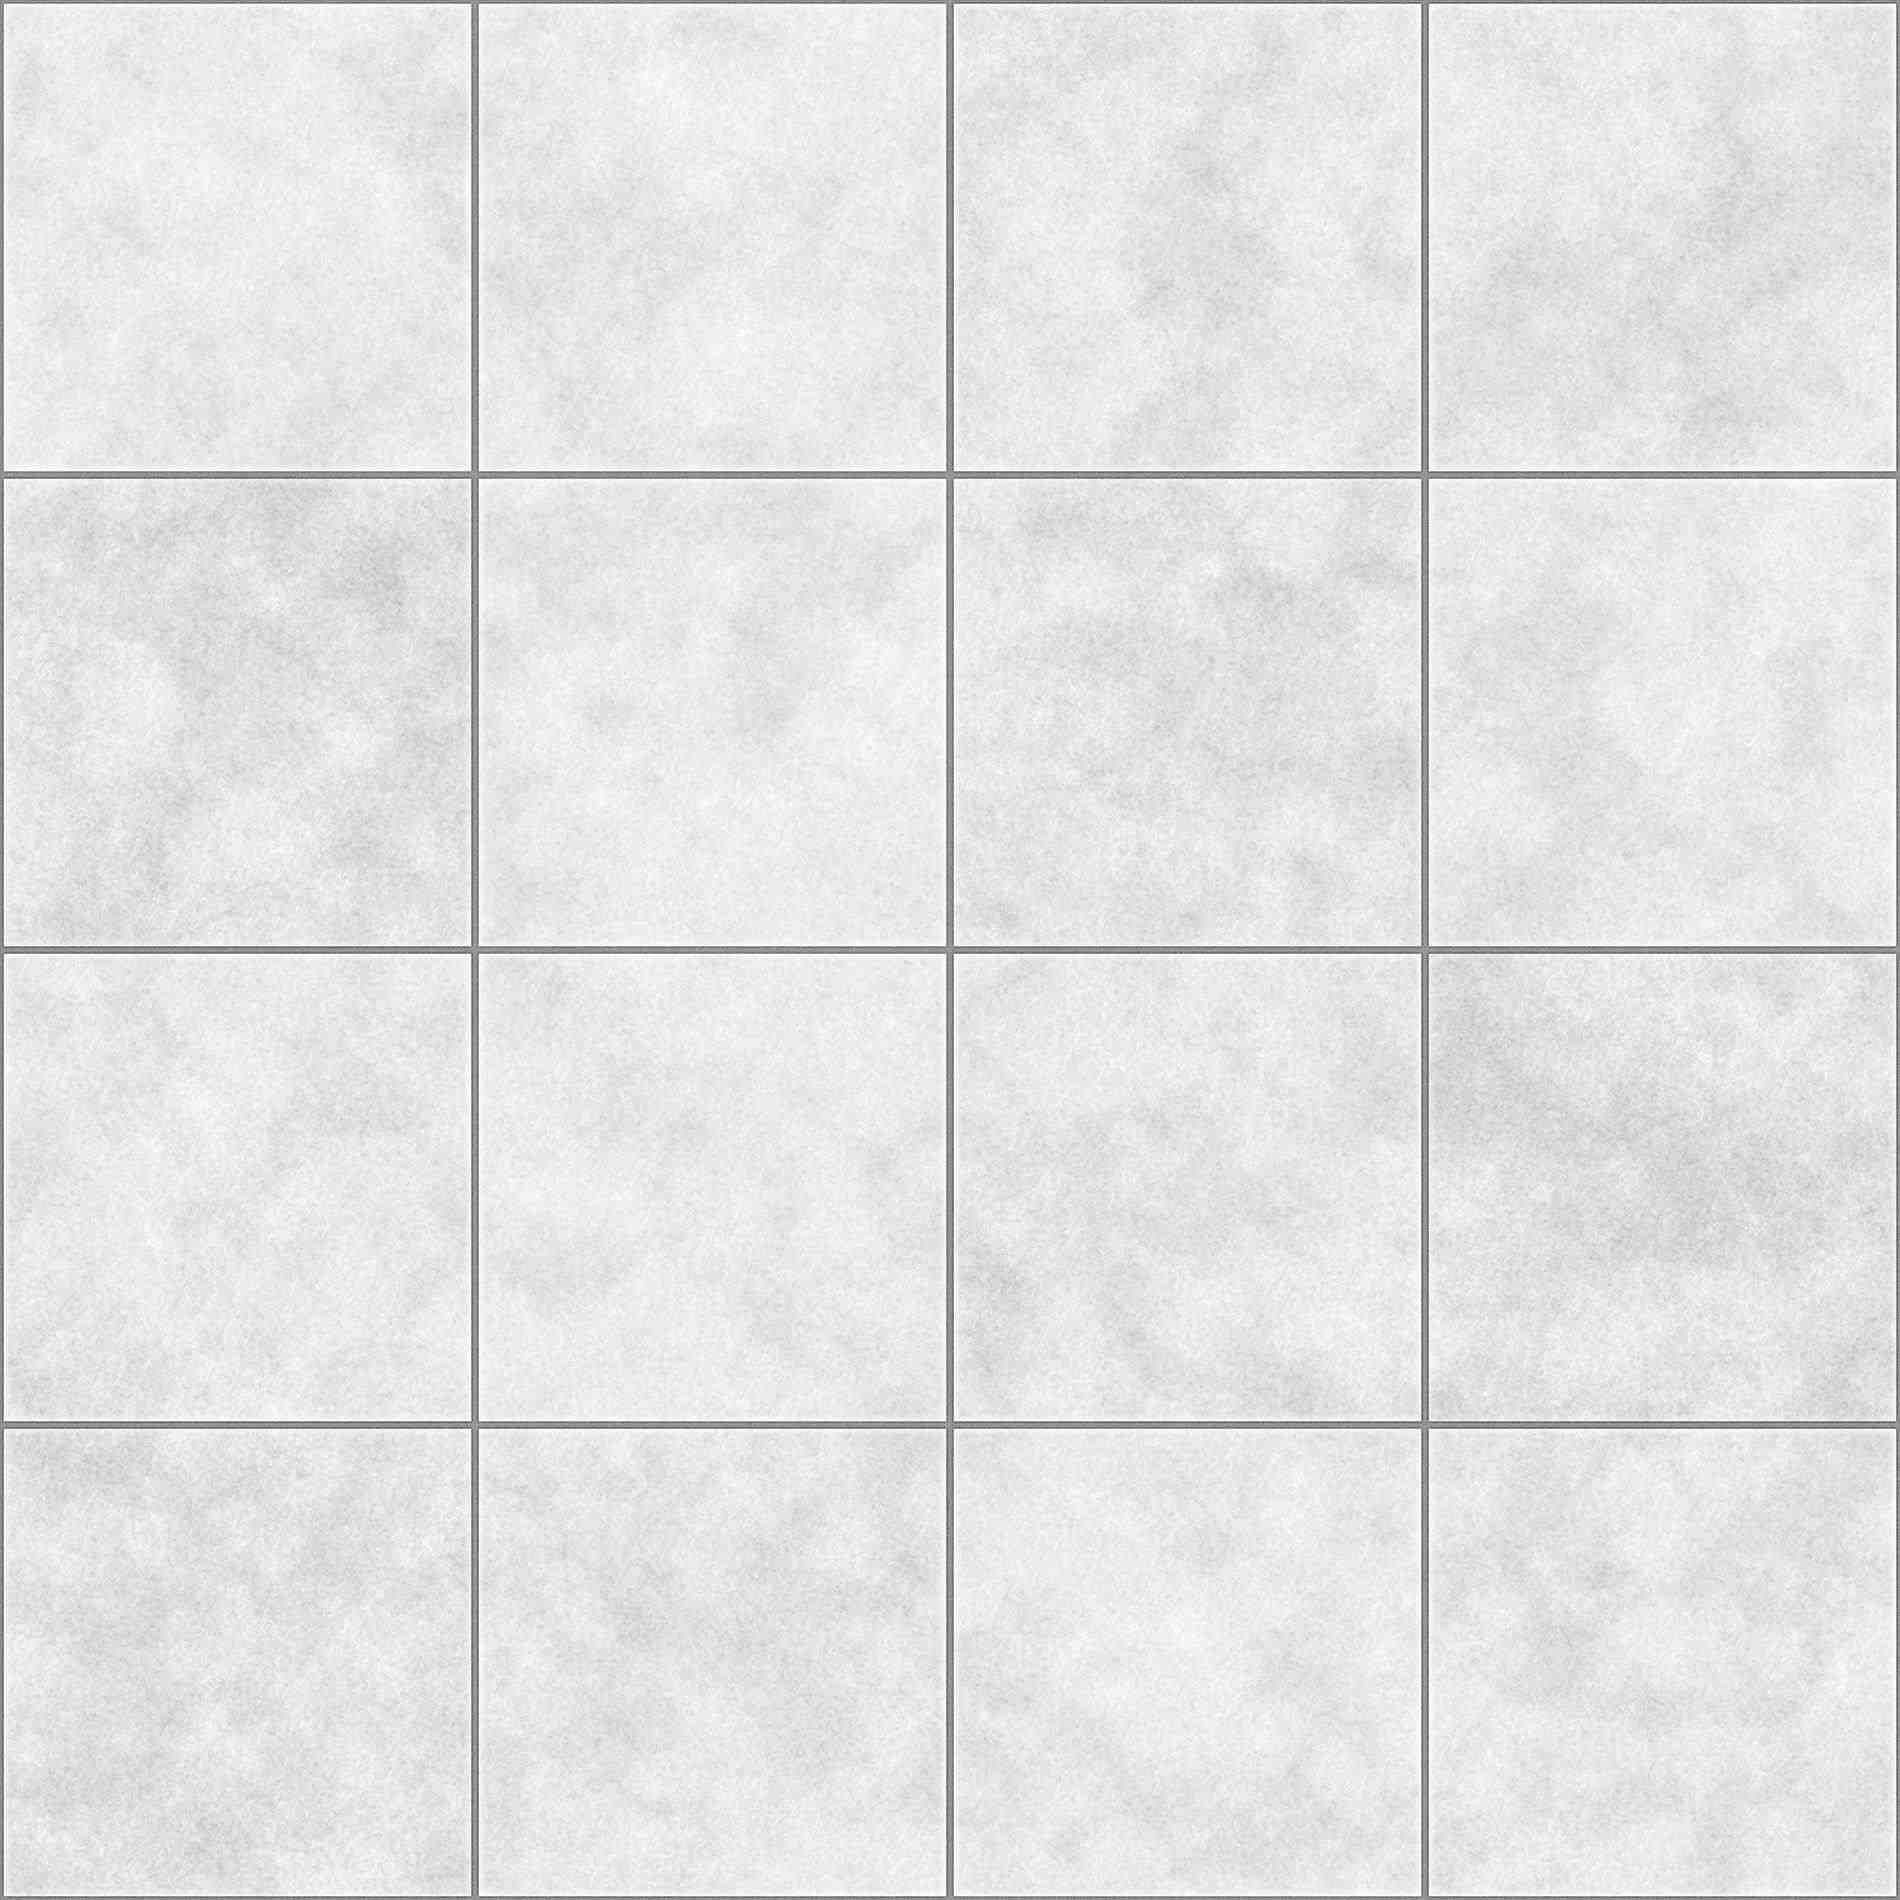 This Bathroom Floor Texture Seamless Texture Seamless Tile Floor Fashionable Design Ideas Brown Tile Texture 15 Marble Tile Floor Tile Floor Tiles Texture